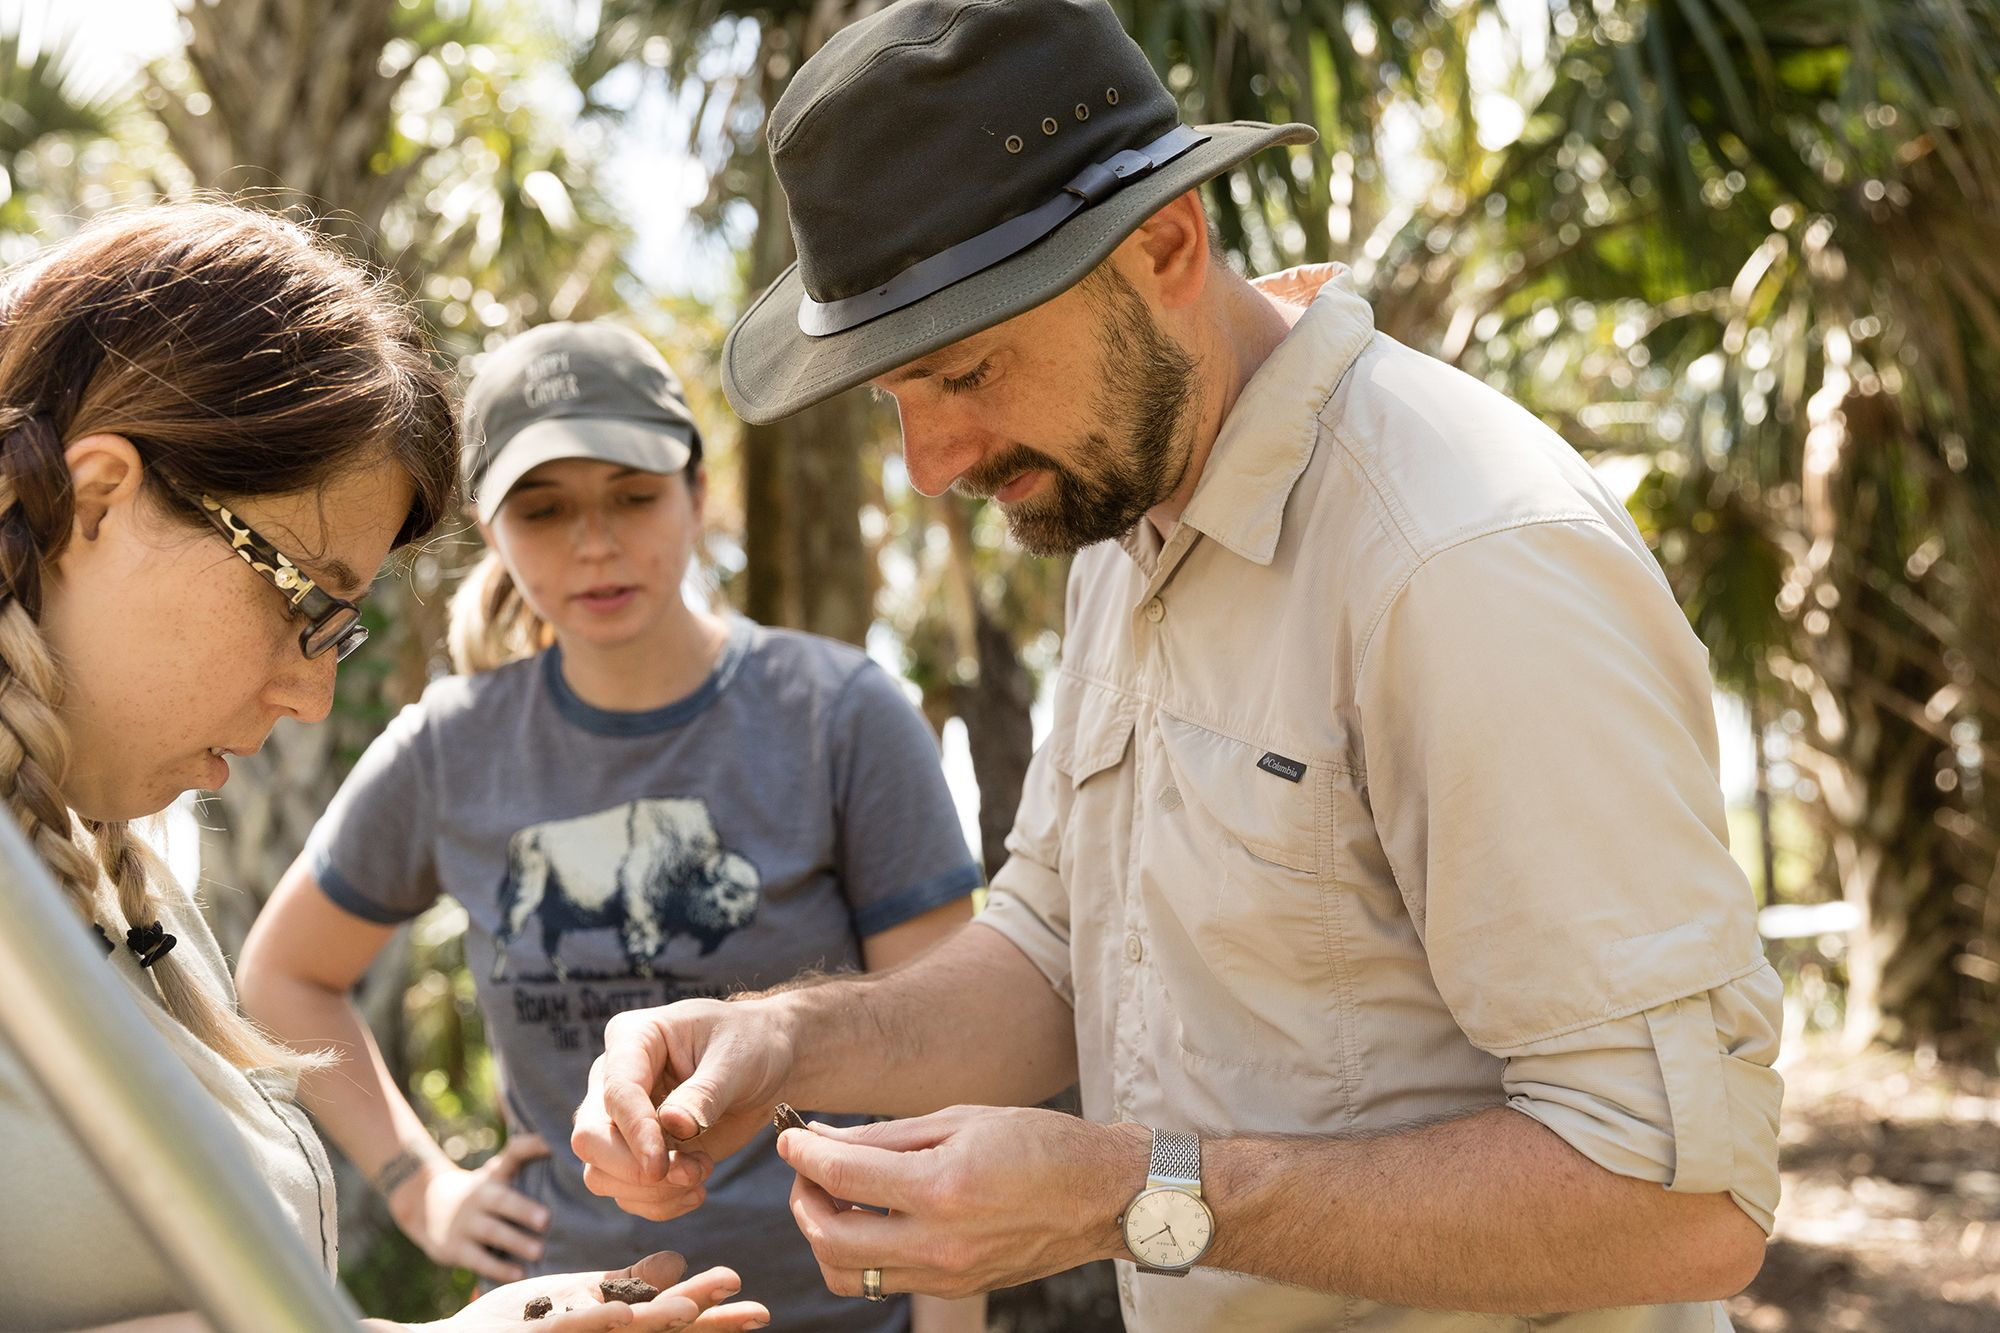 Anthropology professor Zack Gilmore discusses the significance of recently recovered shells and shards from a 5,000-year-old Native American site.